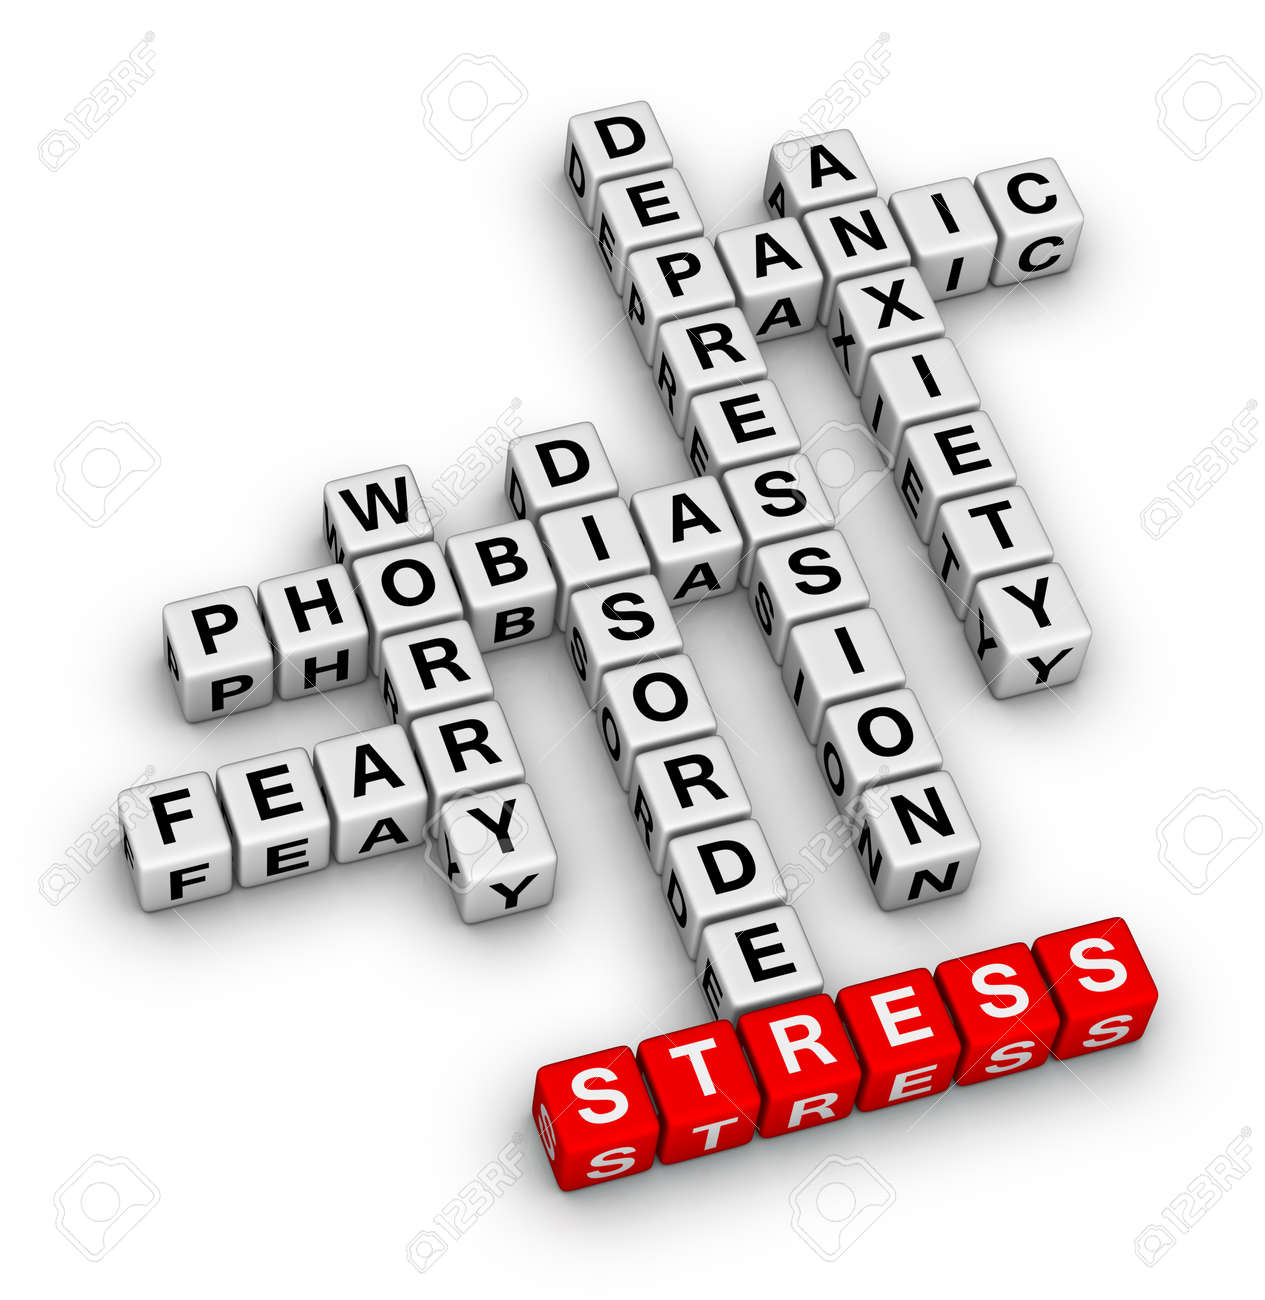 Mental Health Crossword Puzzle Stock Photo Picture And Royalty Free